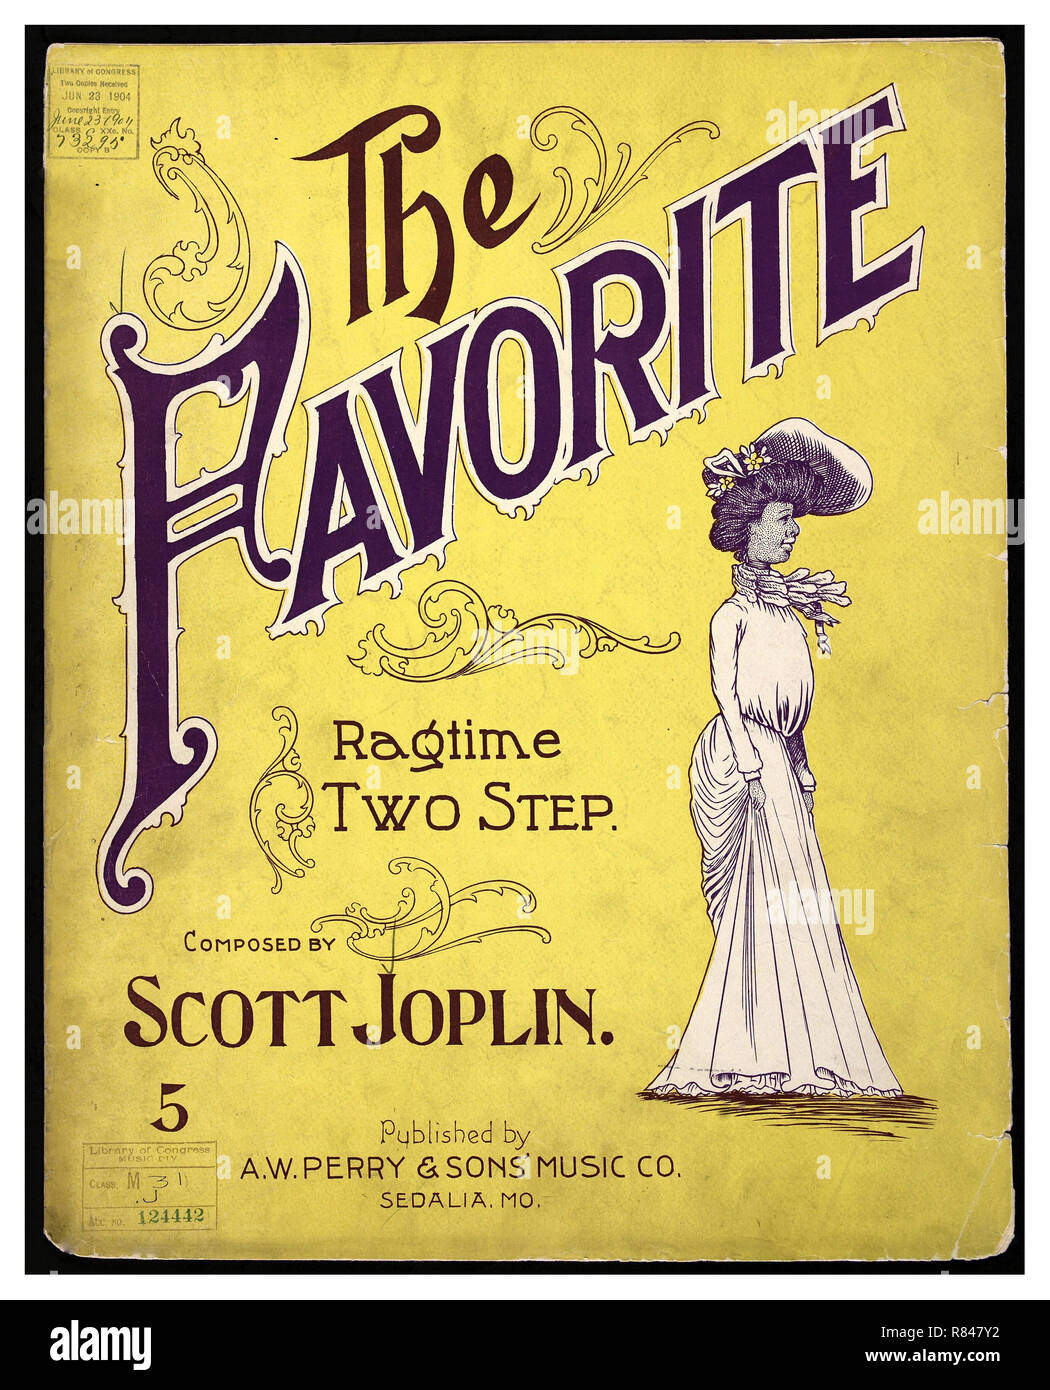 SCOTT JOPLIN 1900's 'The Favorite' Ragtime Two Step Sheet Music by Scott Joplin published by AW Perry and Sons - Stock Image